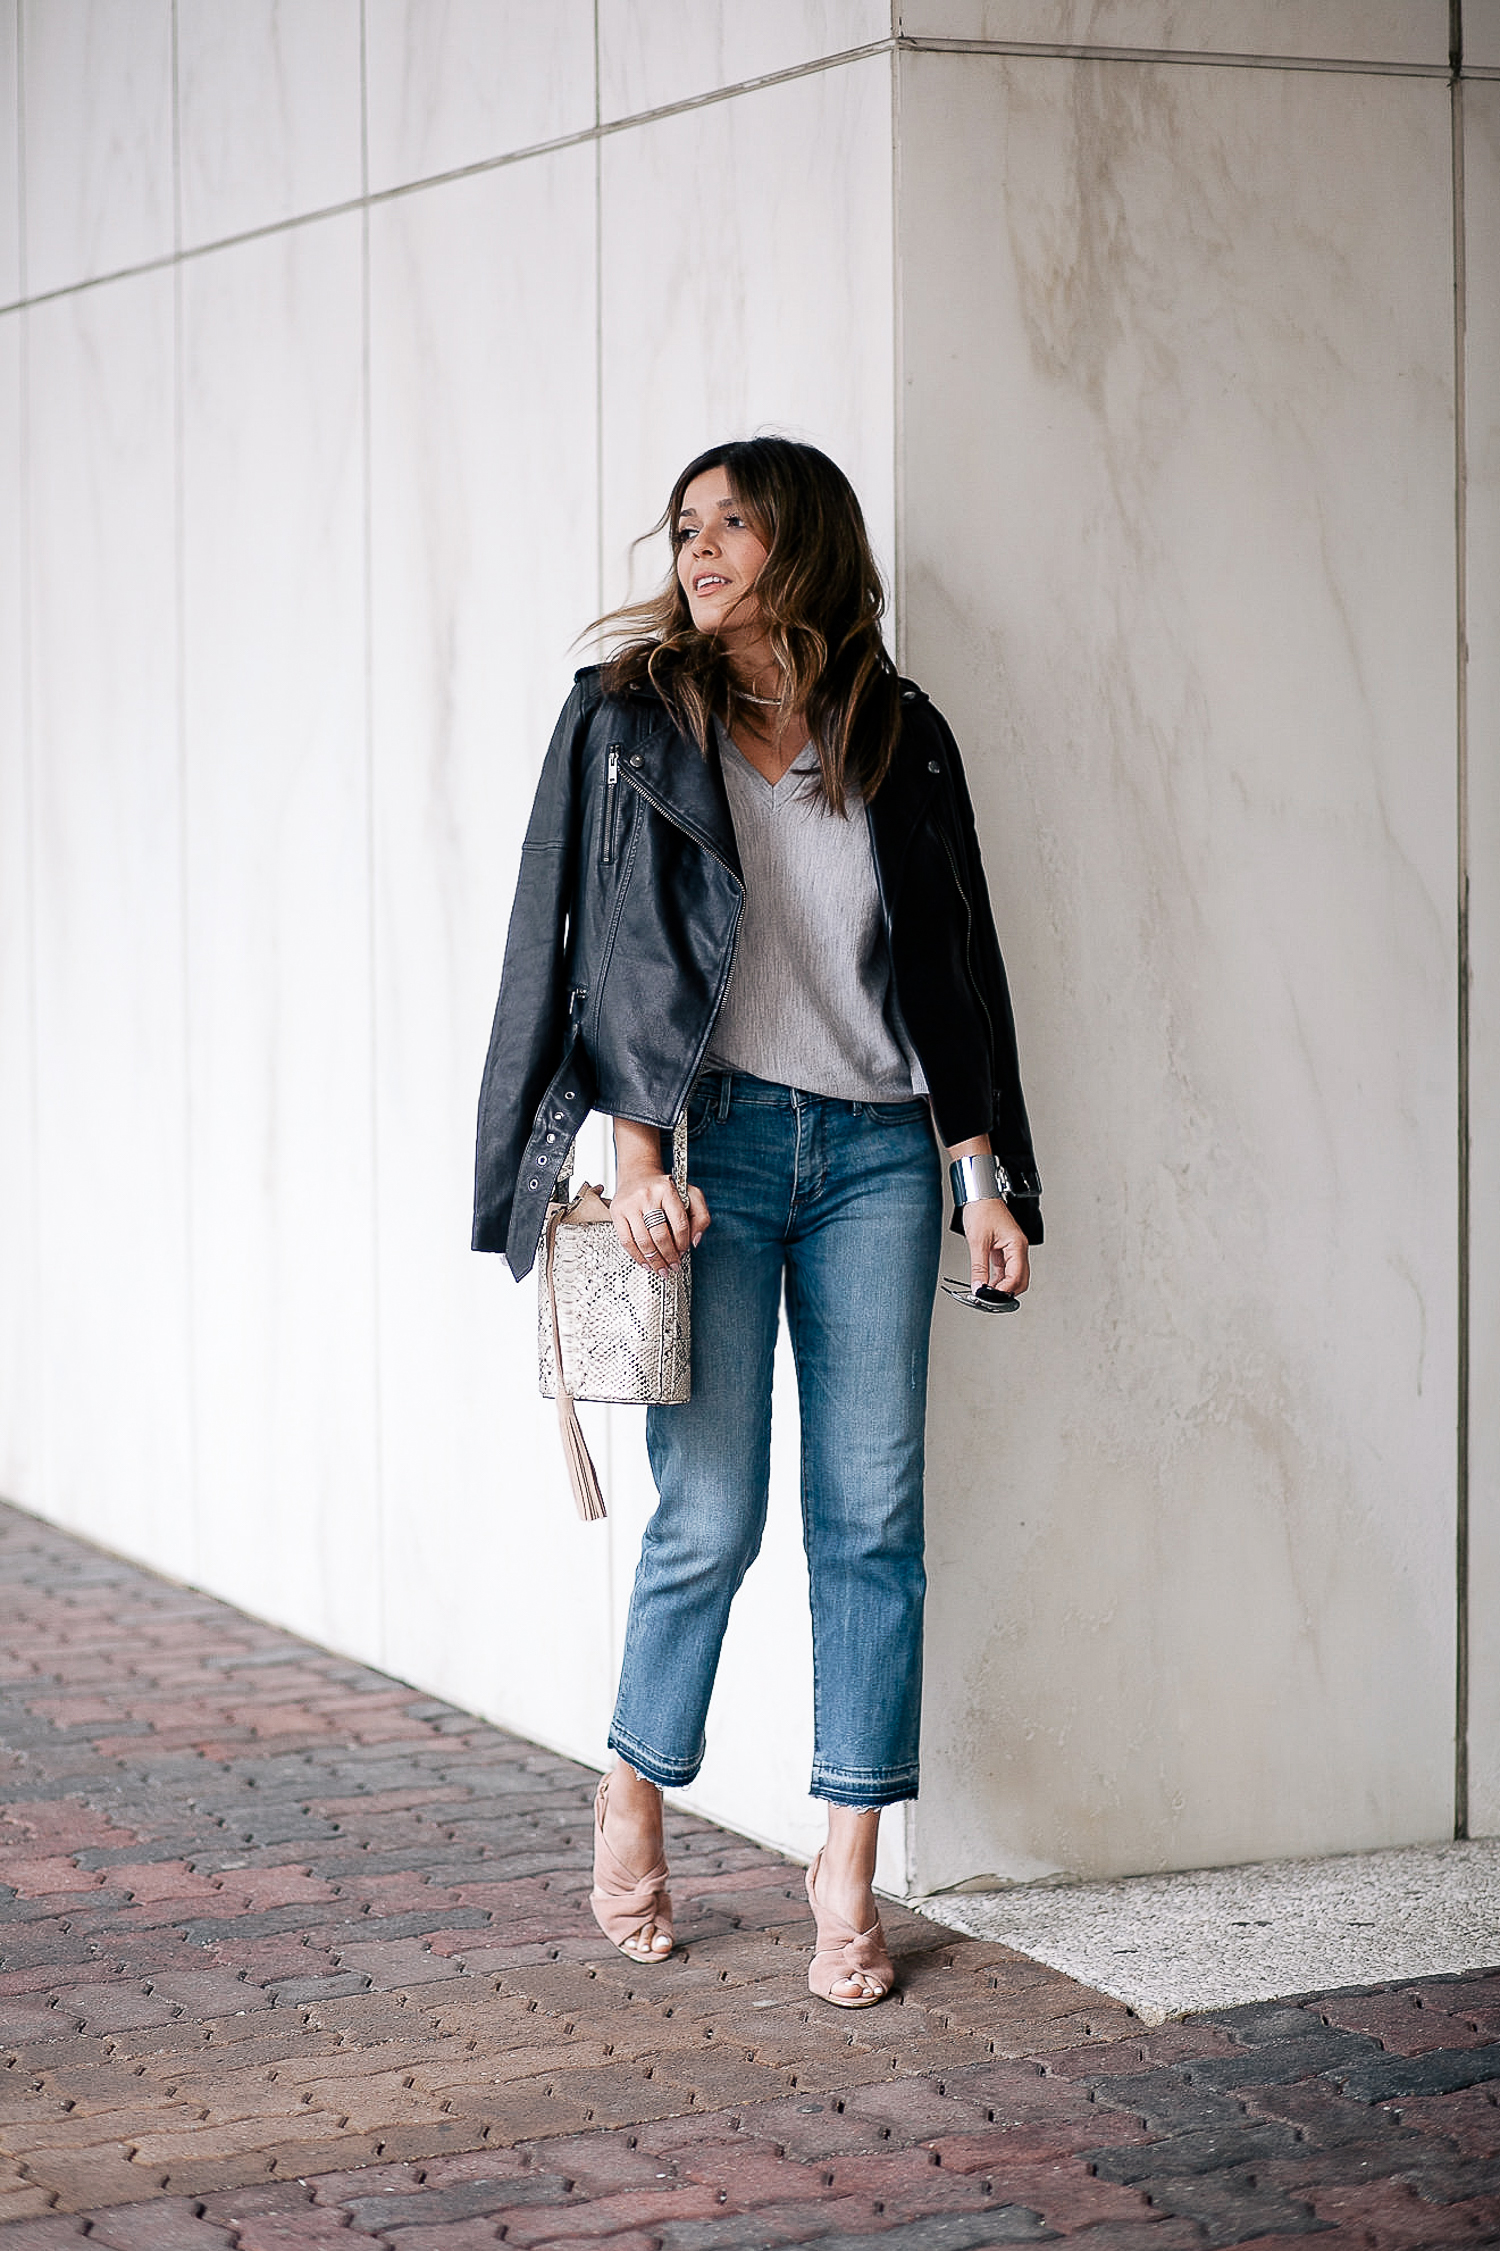 Banana Republic Outfit With Denim and Blush